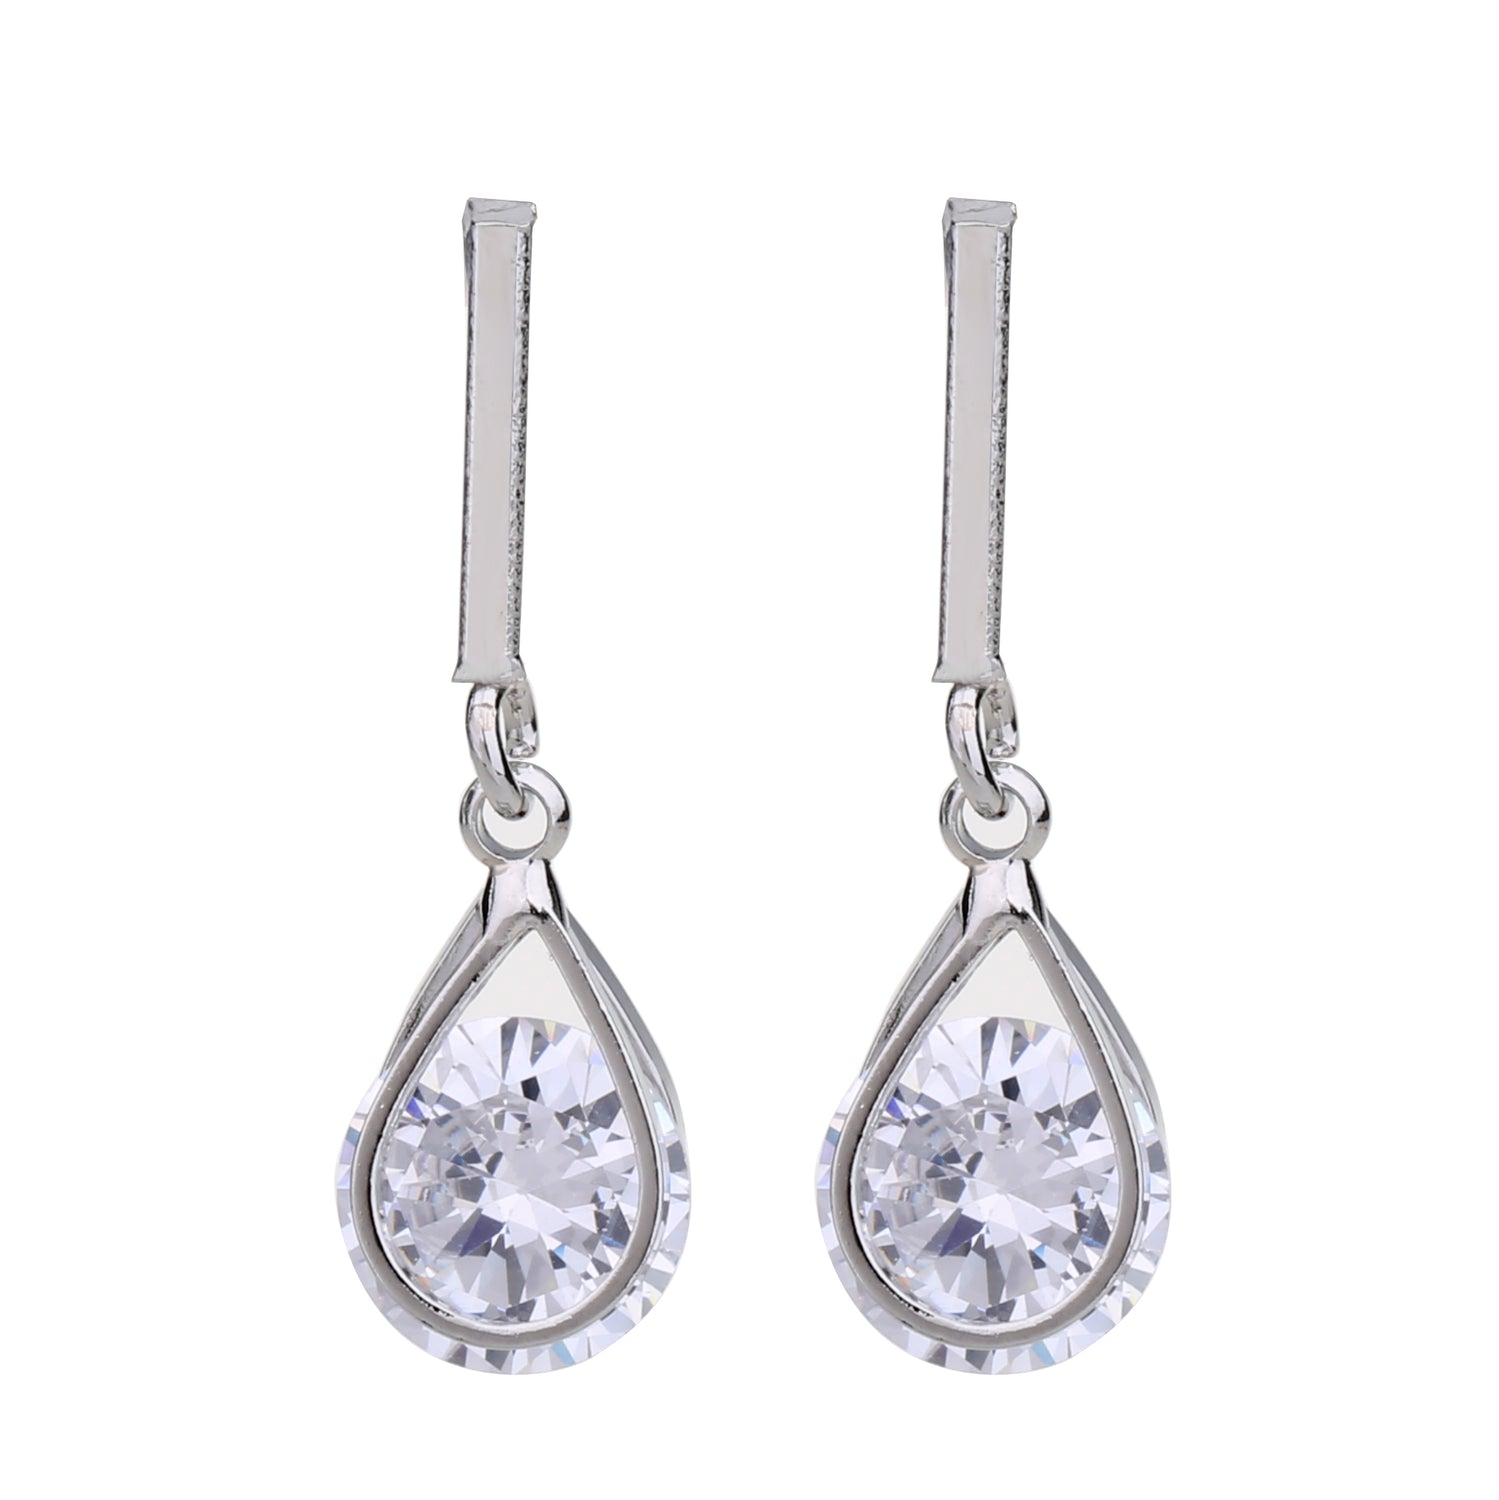 Delicate Ears Cz Drop Earring Silver Plating